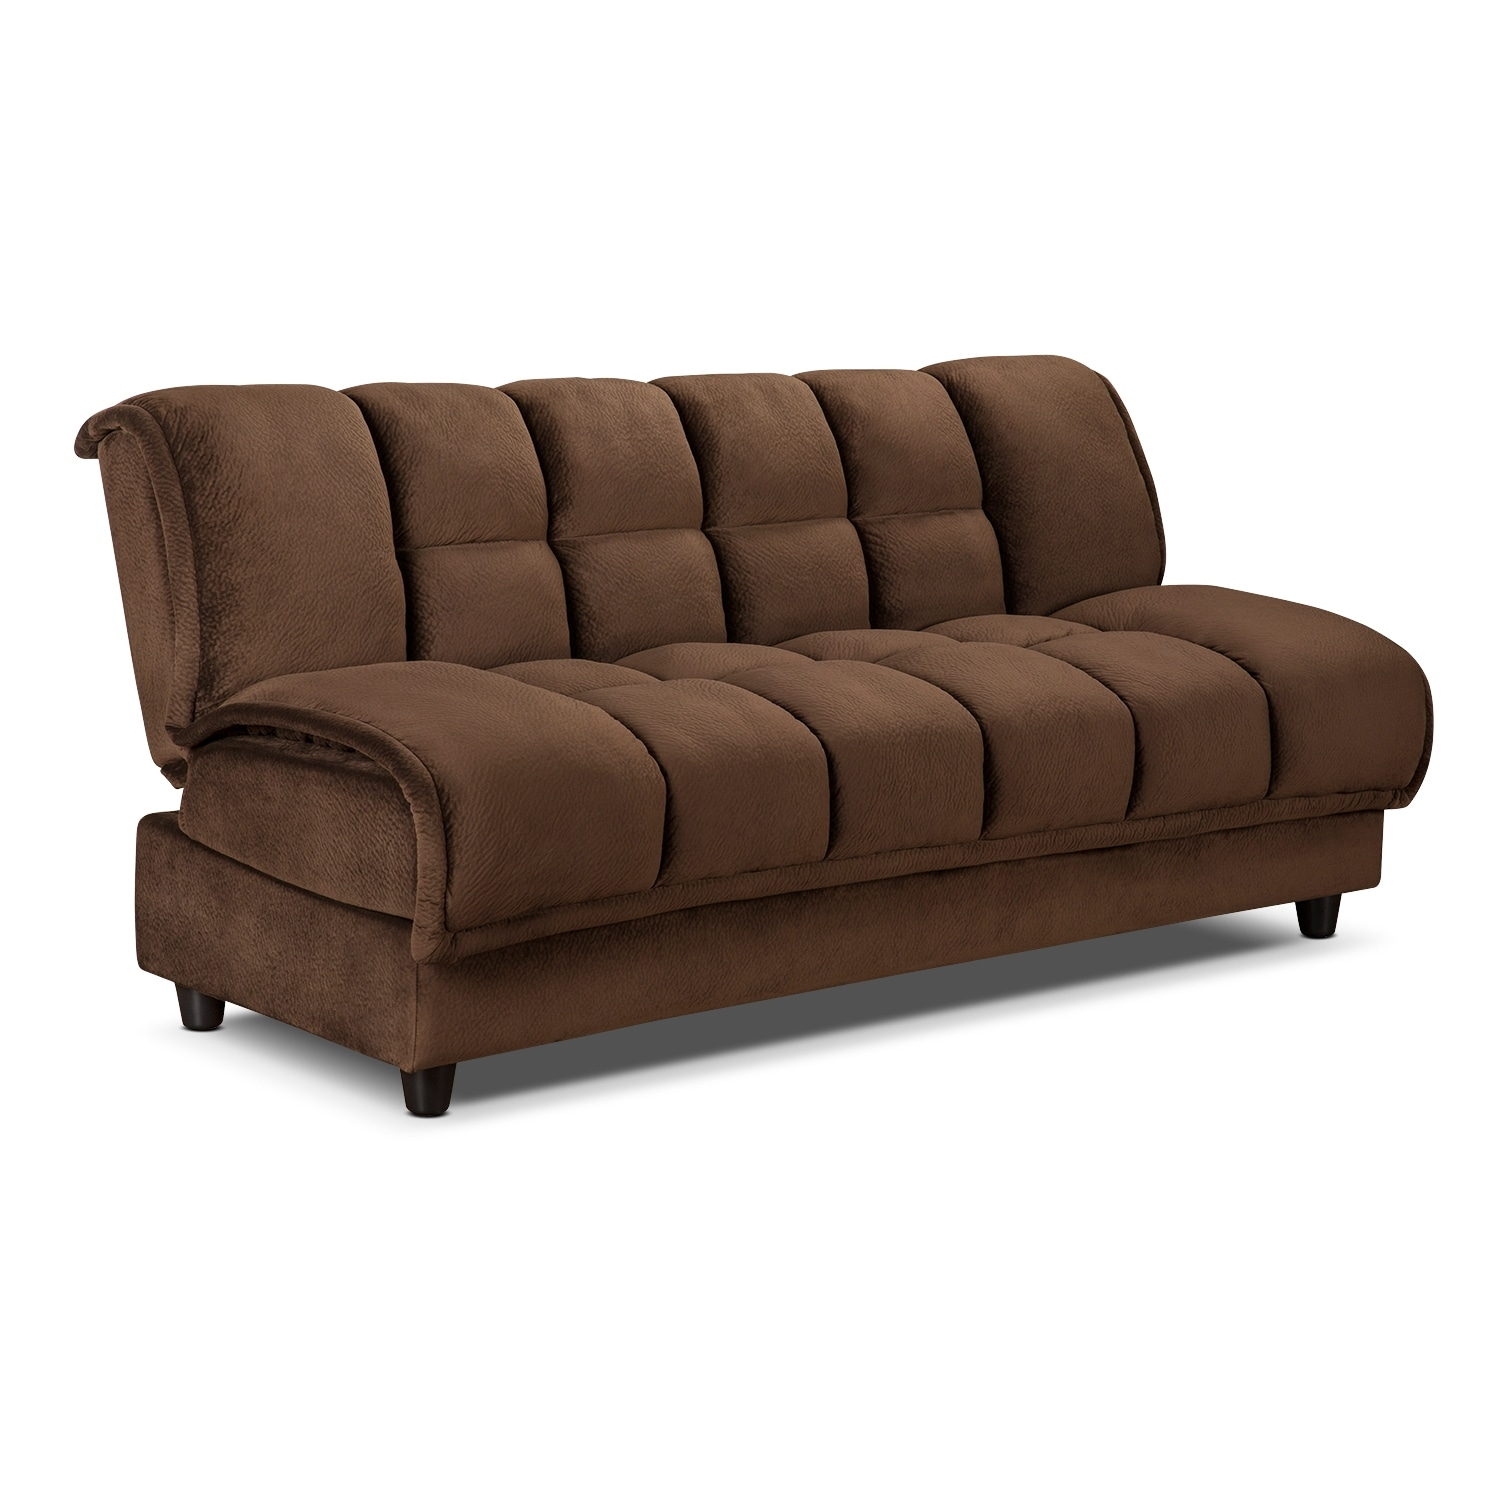 Bennett Futon Sofa Bed